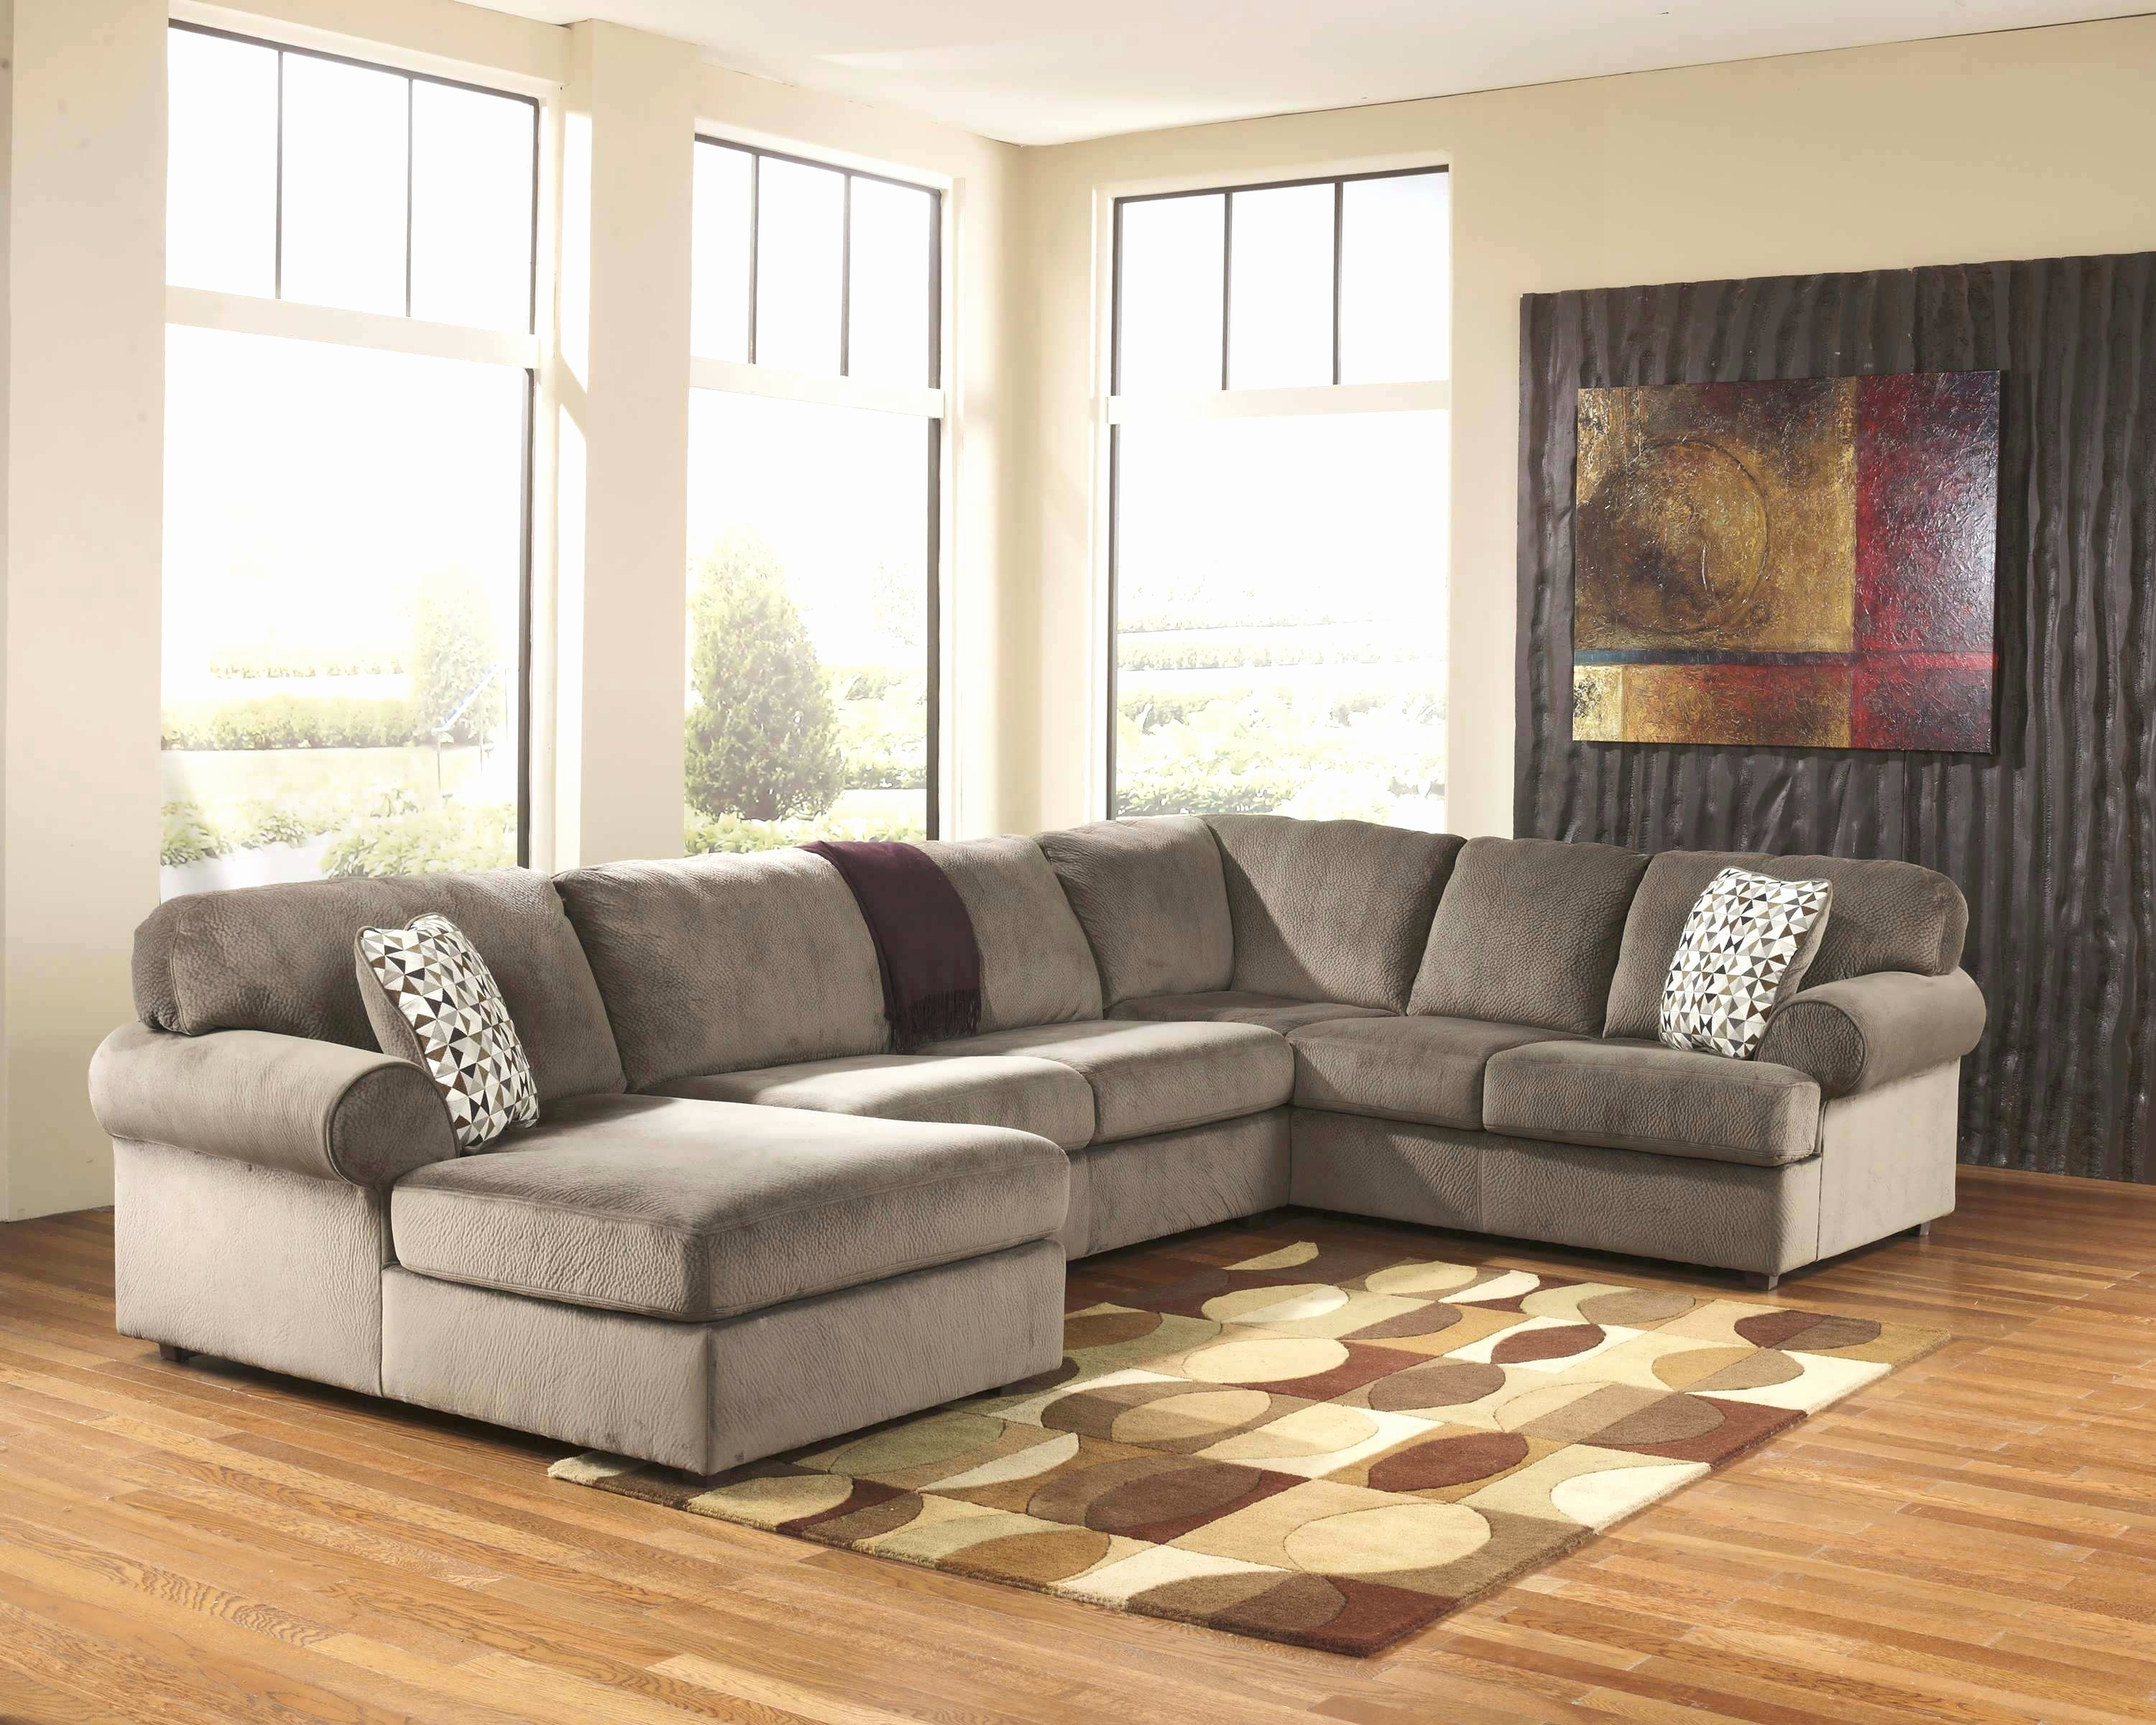 Awesome Sectional Sofa Montreal 2018 – Couches Ideas Within Kijiji Montreal Sectional Sofas (Image 1 of 10)